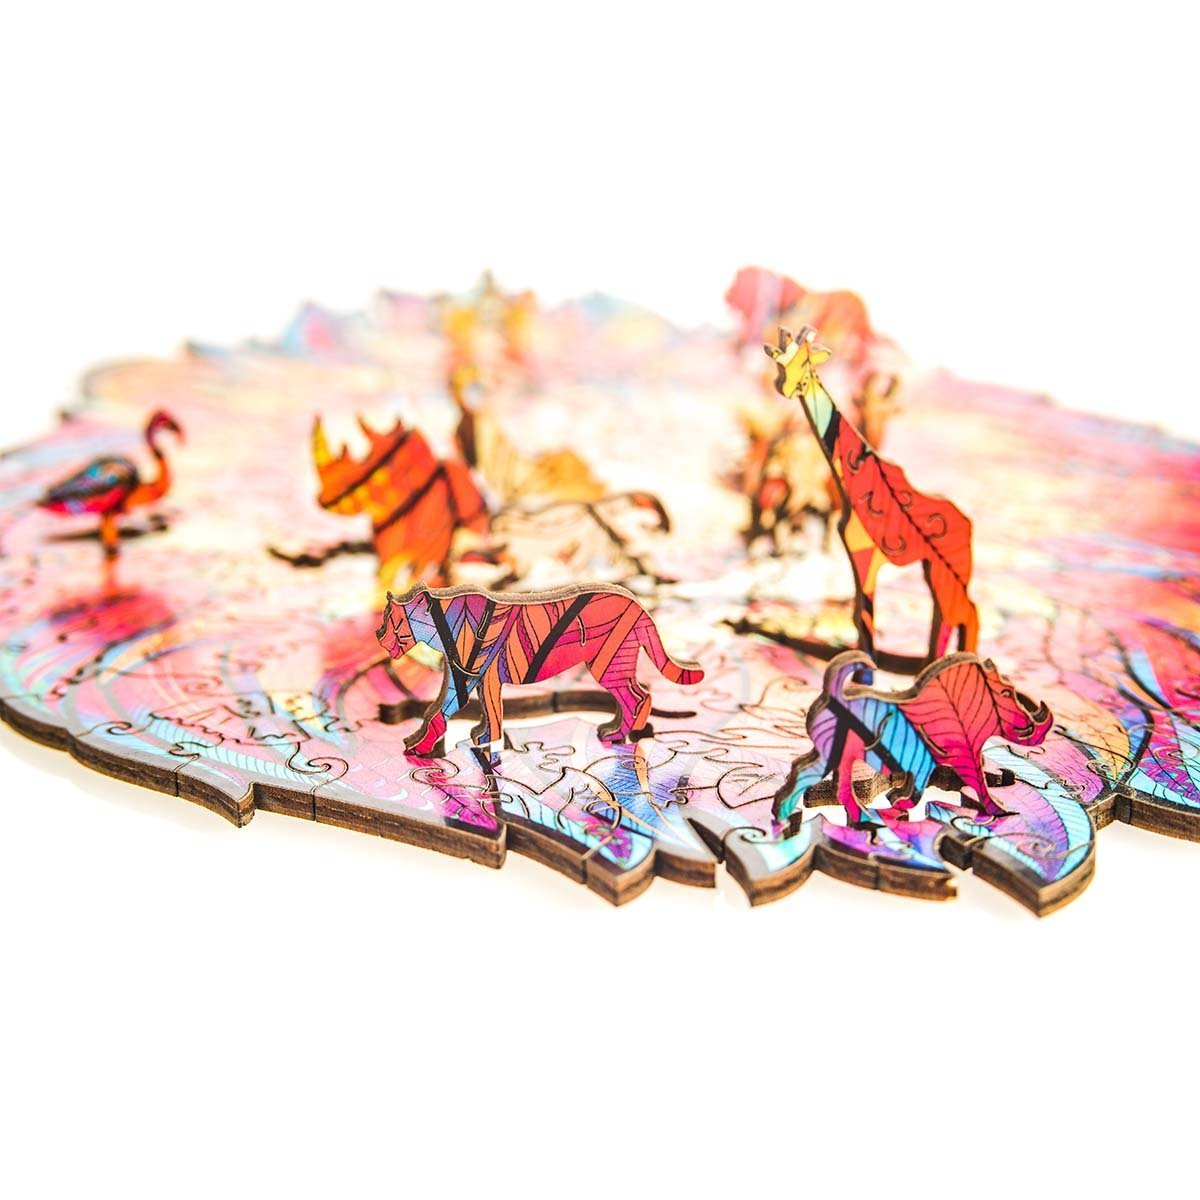 Wooden Jigsaw Puzzle Mysterious Lion-50% off